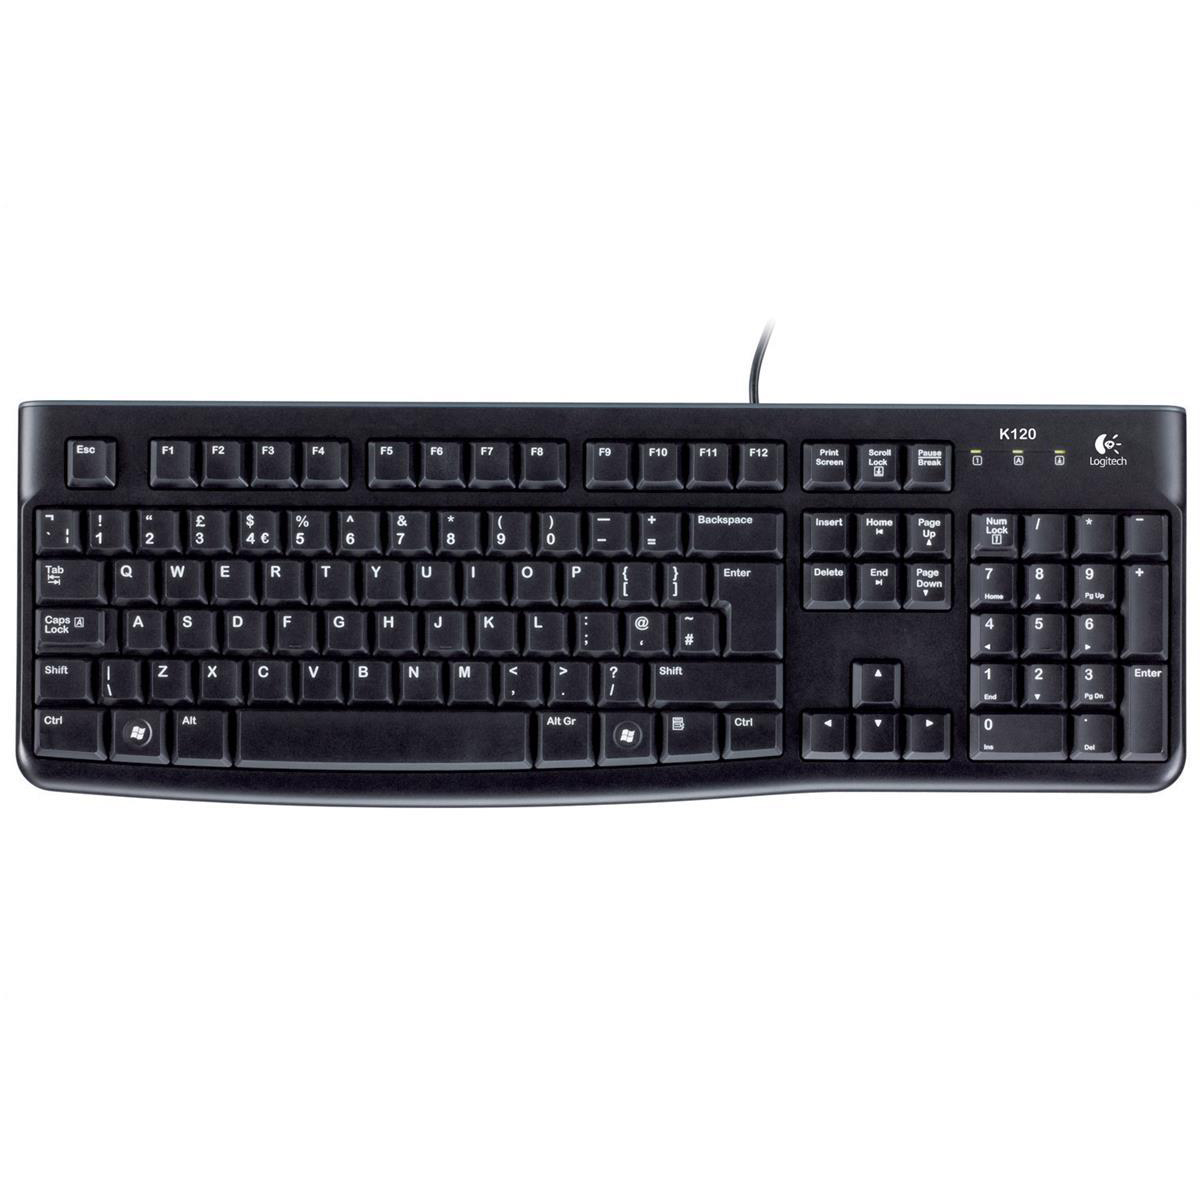 Keyboards Logitech K120 UK Business Keyboard Wired USB Low-profile Keys Ref 920-002524